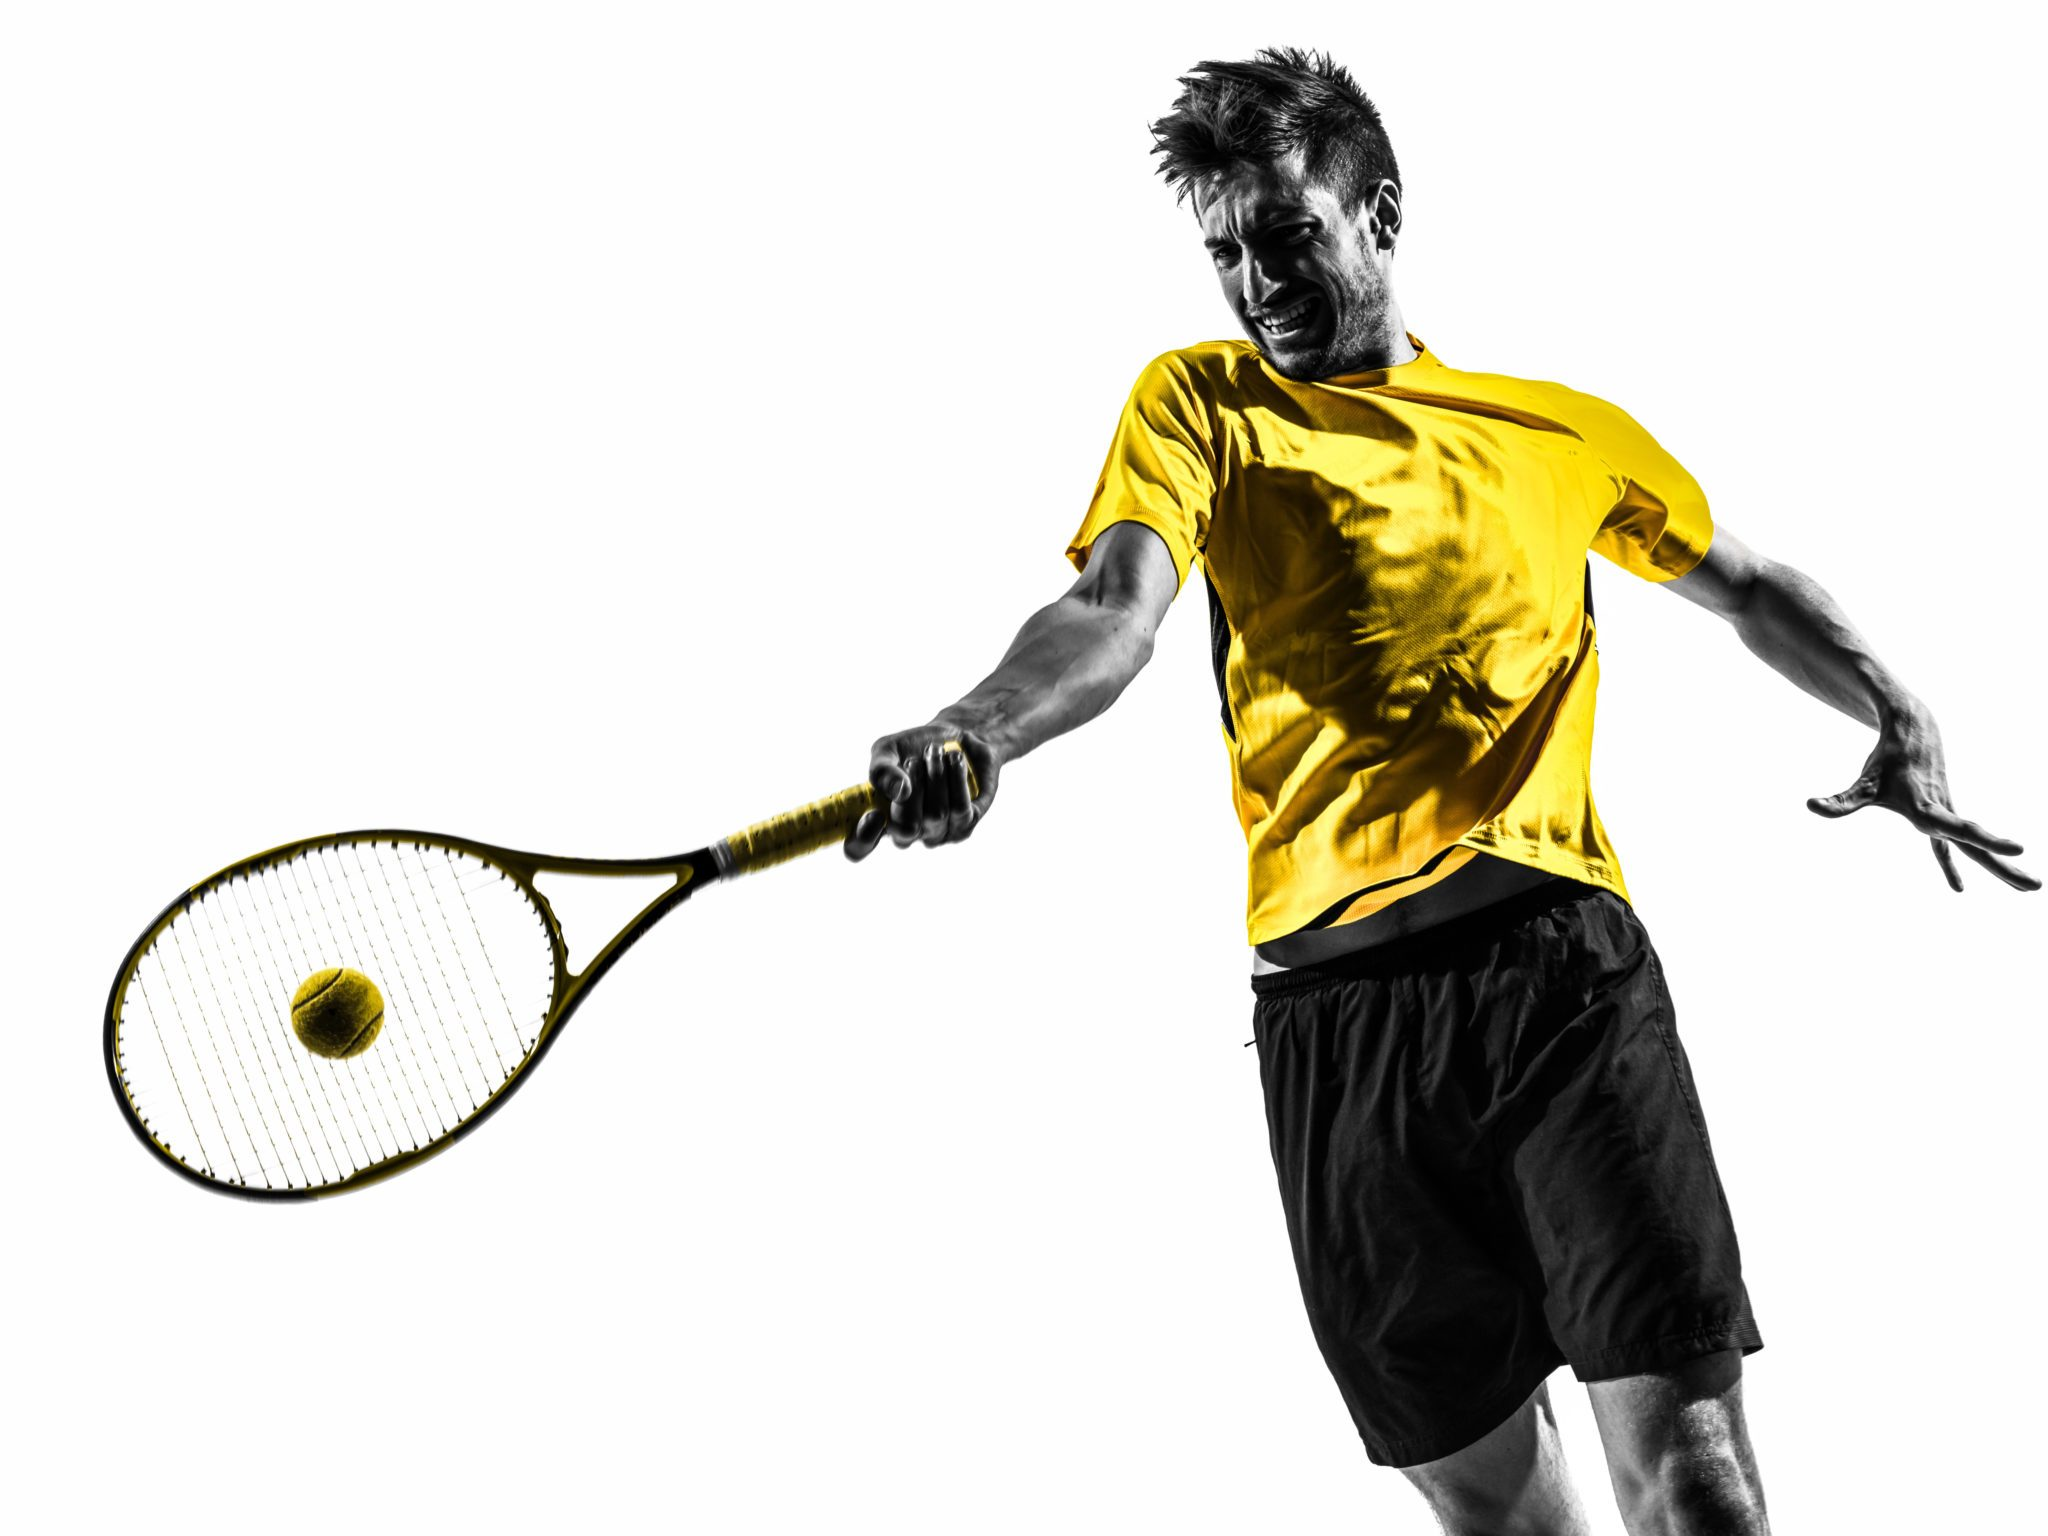 2048x1536 One Man Tennis Player Portrait In Silhouette On White Background